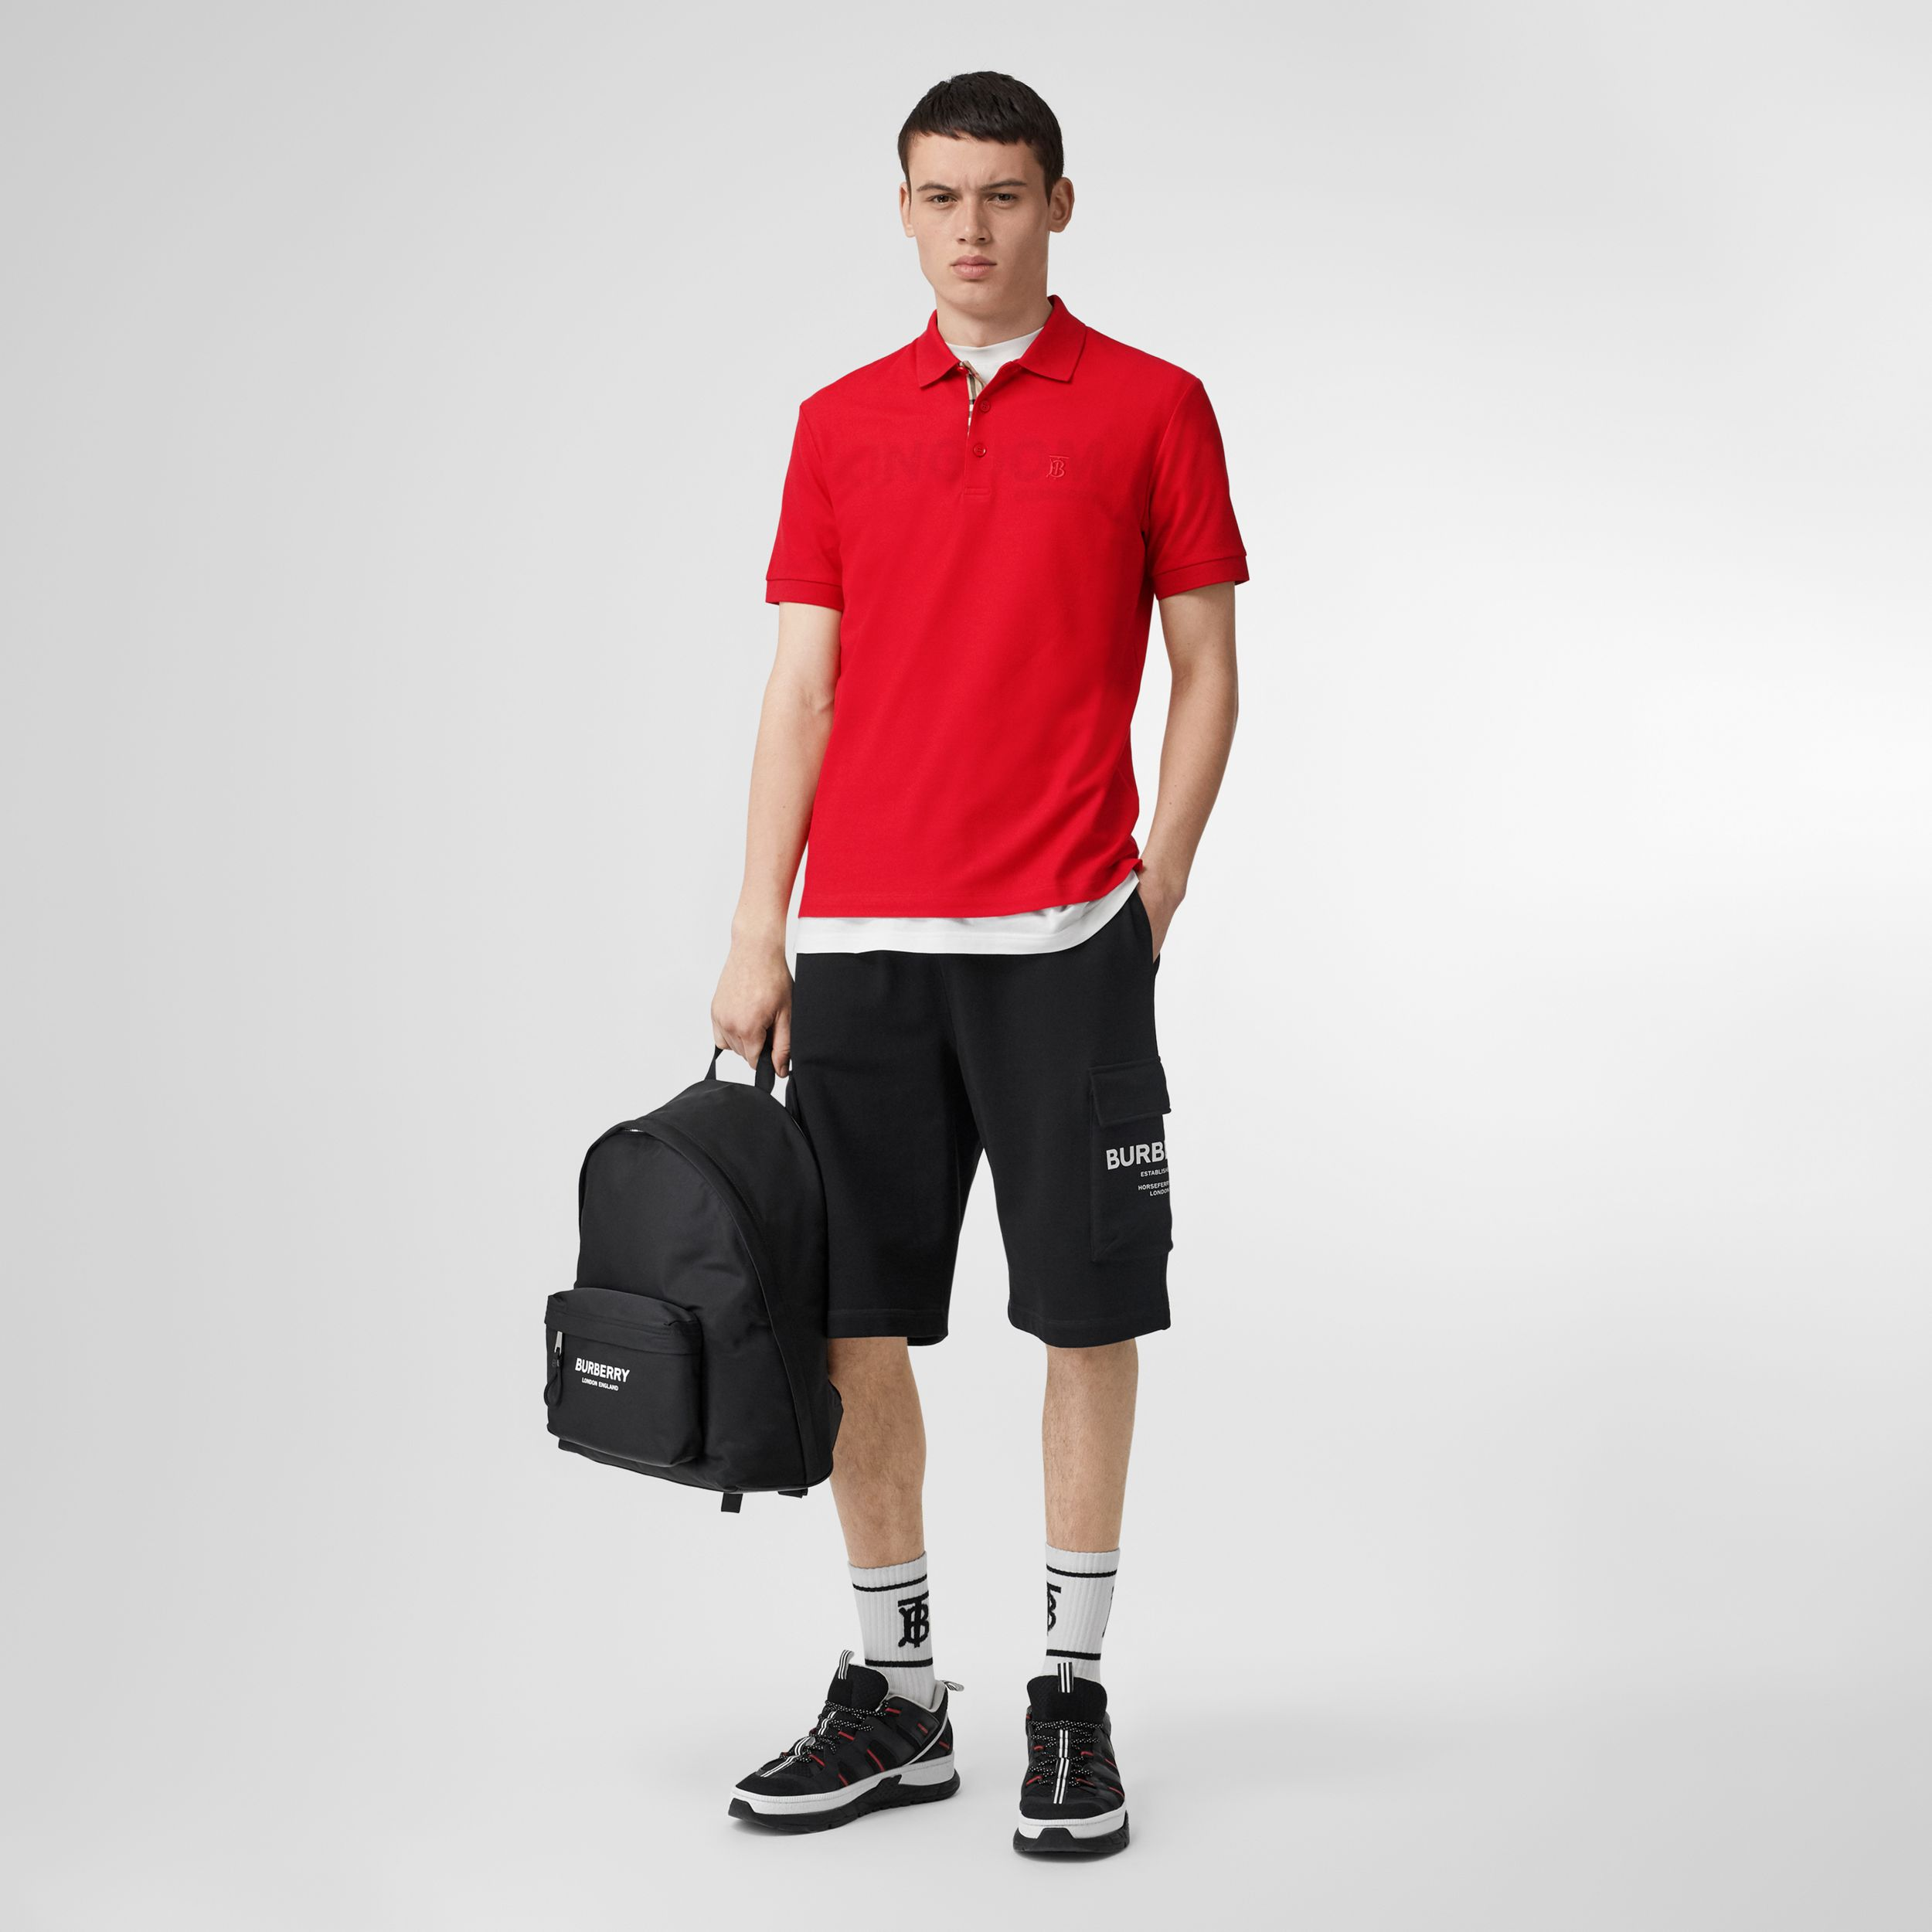 Monogram Motif Cotton Piqué Polo Shirt in Bright Red - Men | Burberry Canada - 1